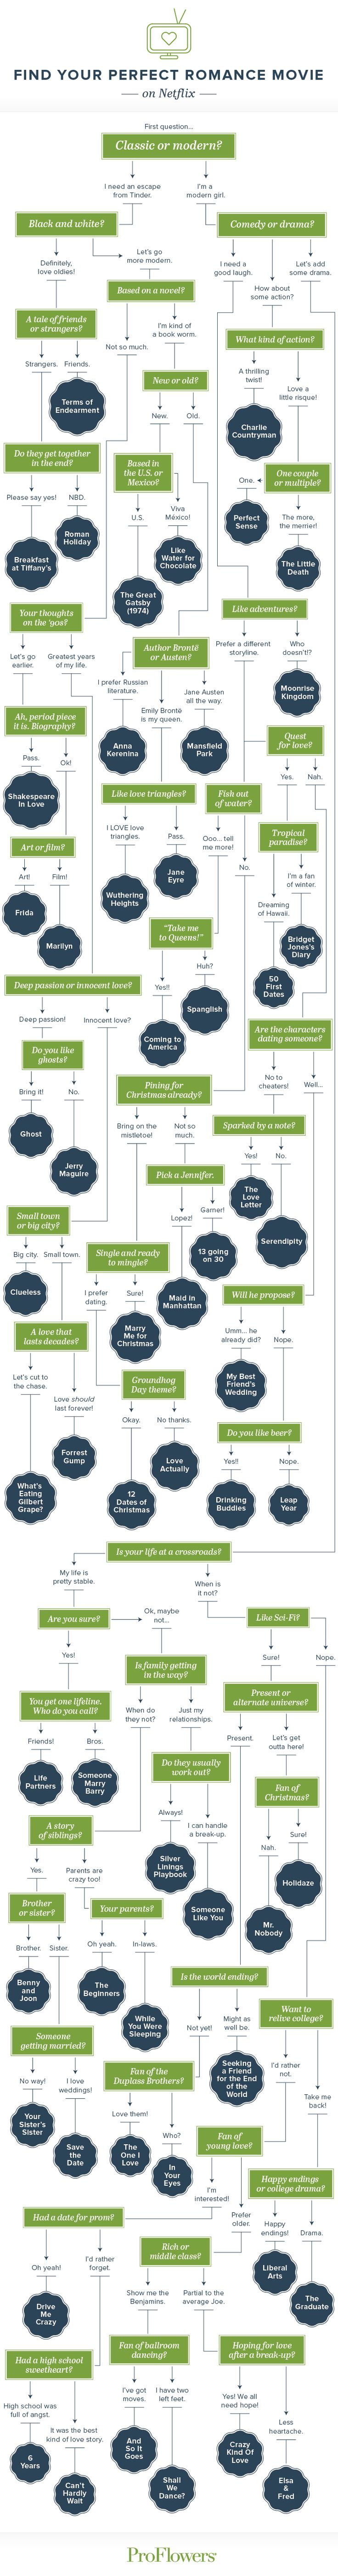 Can't device what movie to watch? Check out this flow chart to help you decide!